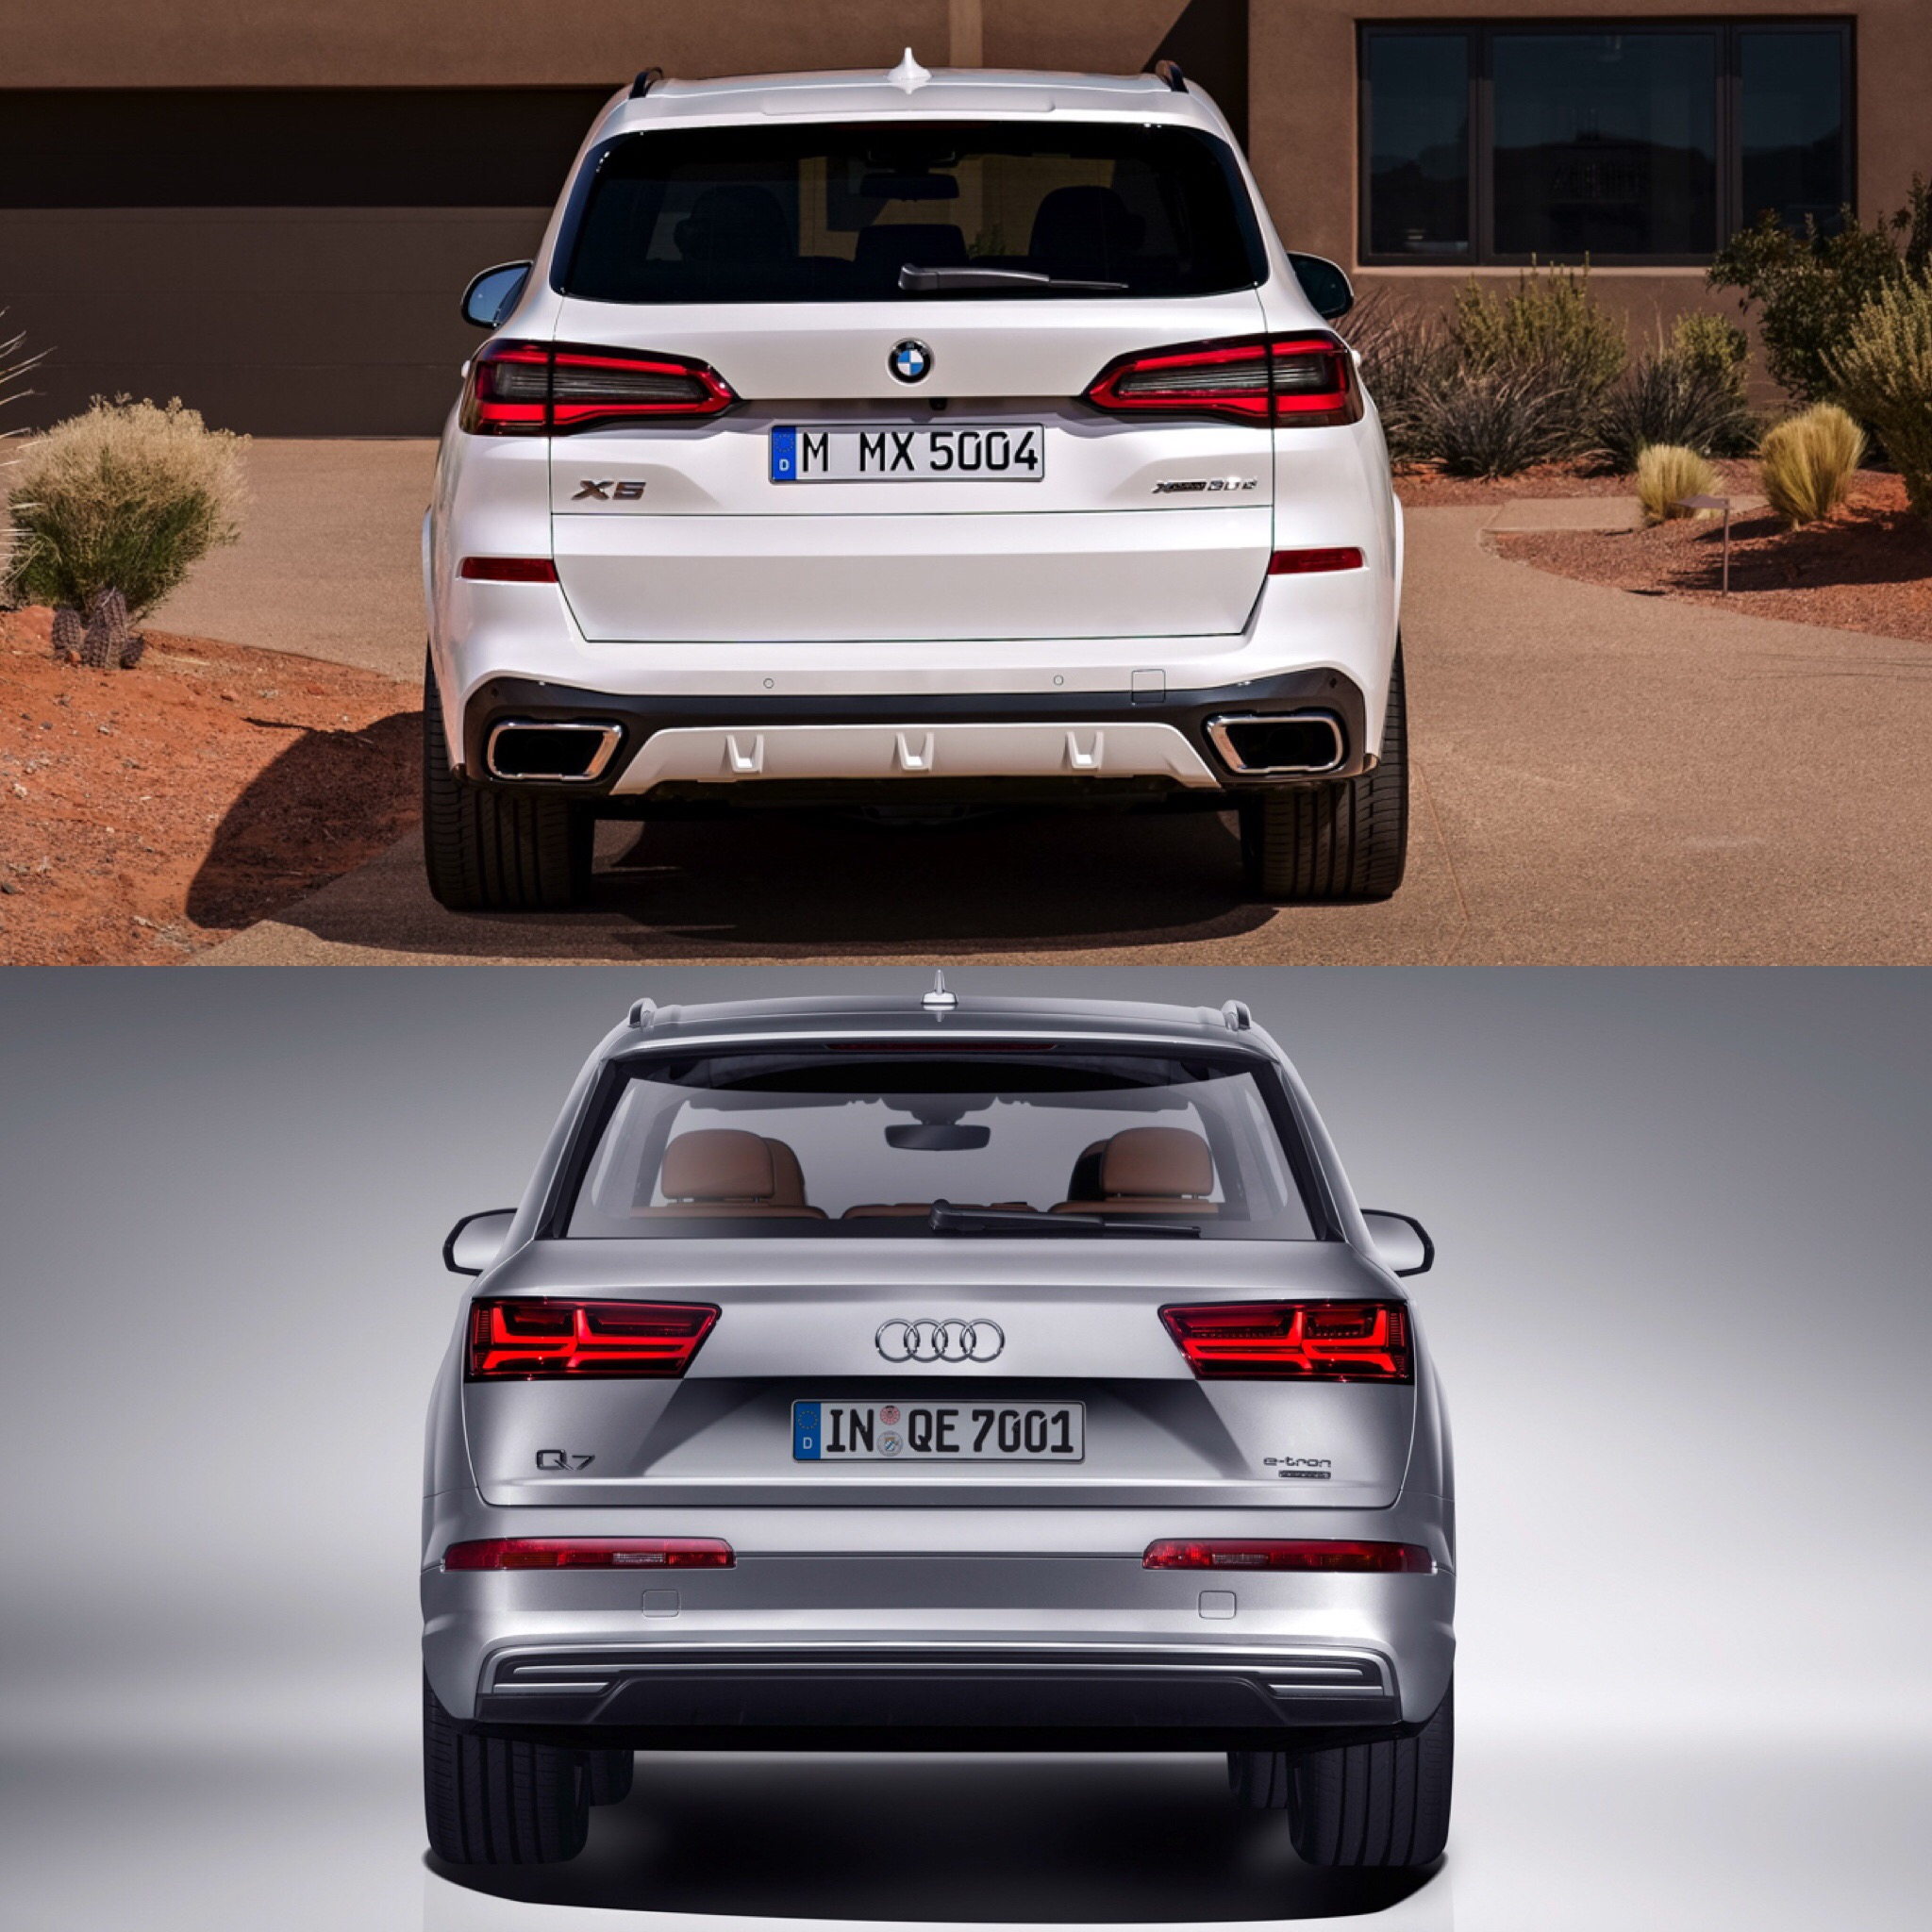 BMW X5 iPerformance (G05) mod big